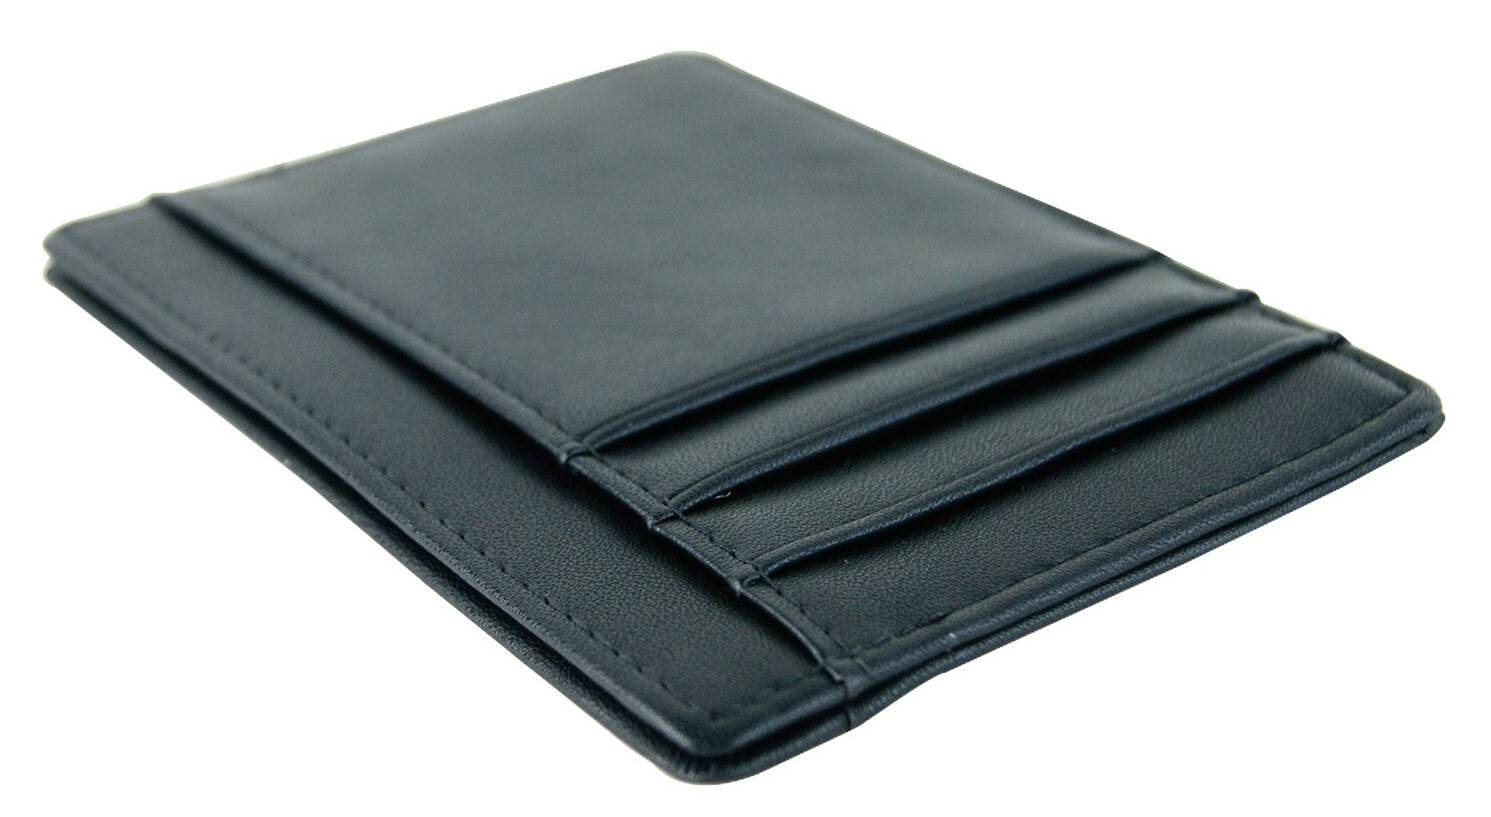 Minimalist leather slim front pocket wallet